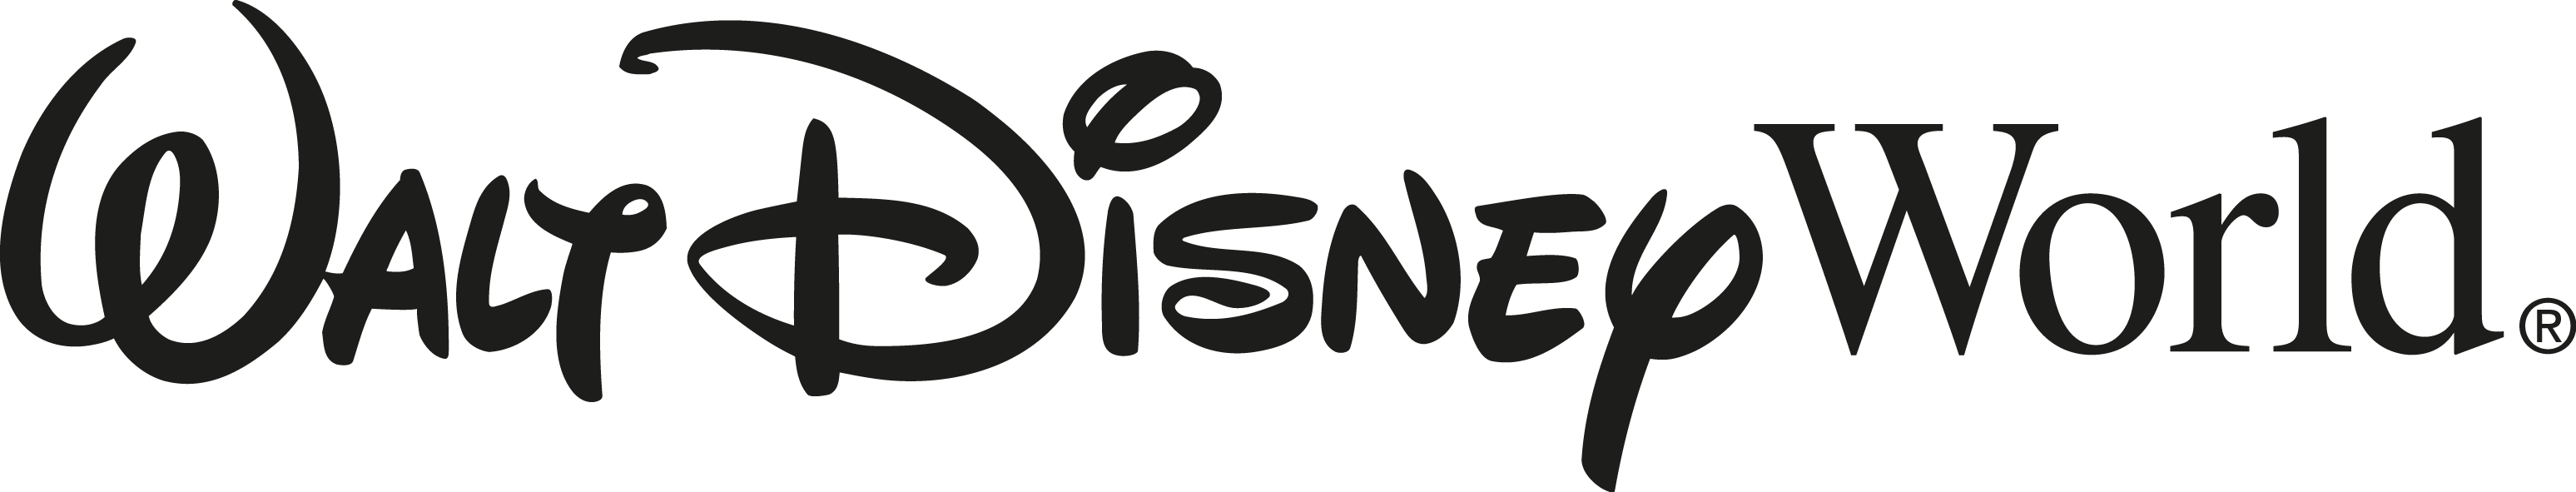 Walt Disney World Logo png